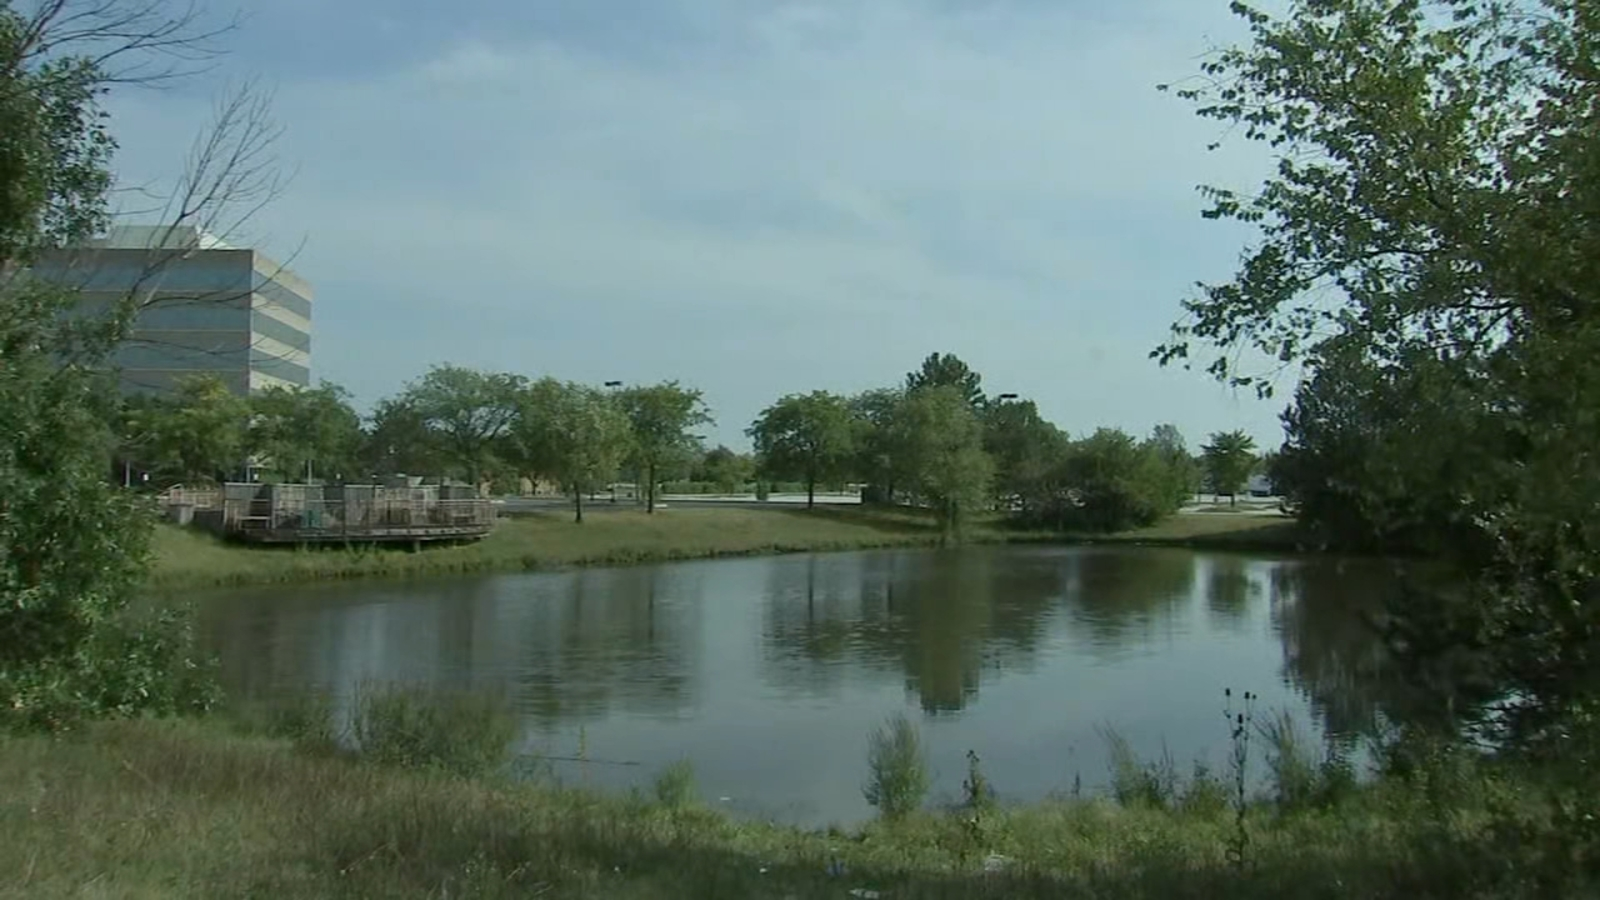 Body of man pulled from pond in south suburban Matteson, police say